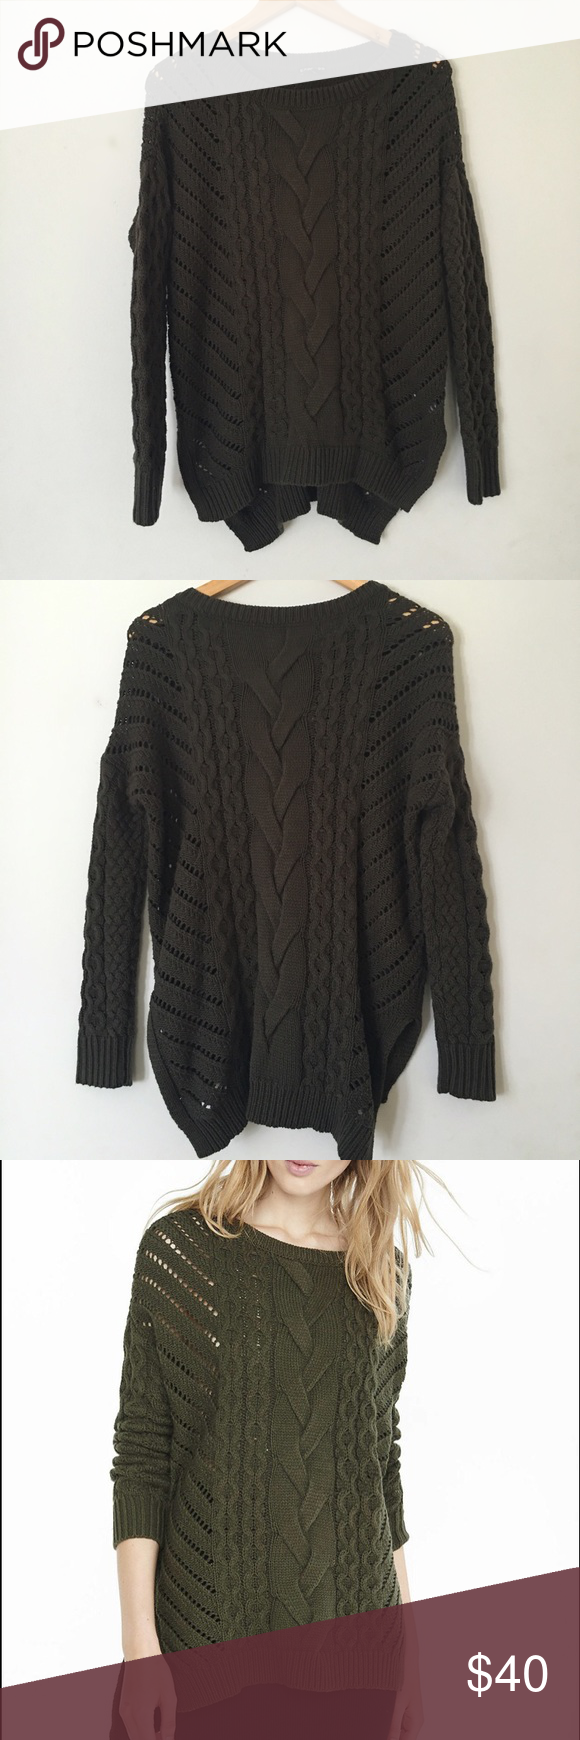 ❗️FLASH SALE❗️Express Green Cable Knit Sweater | Cable knit ...